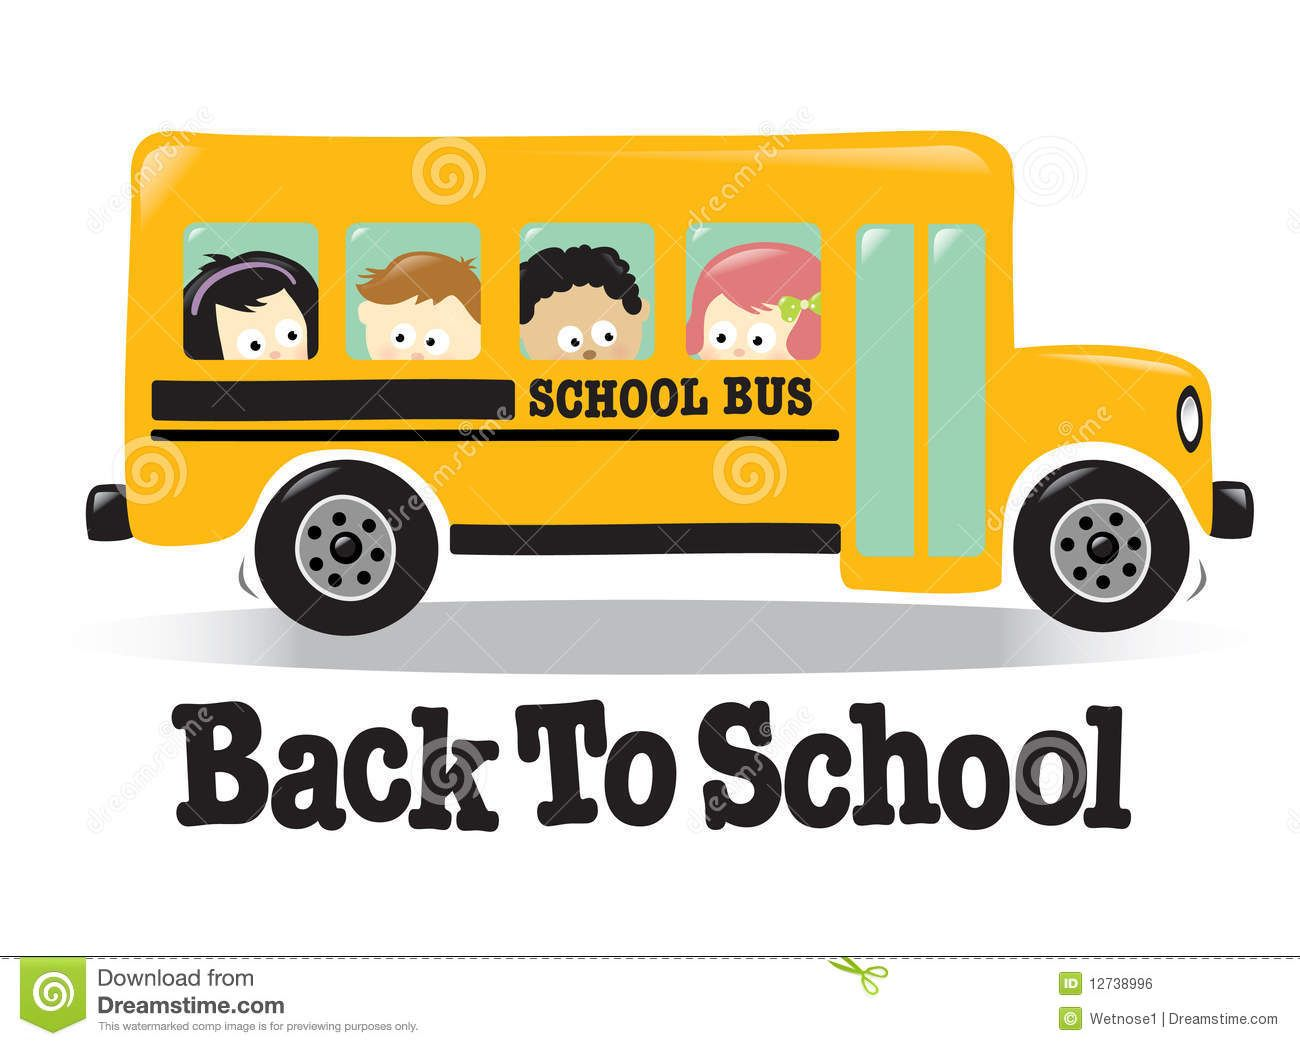 Free Animated Cute Back To School Clipart School Bus Pattern.